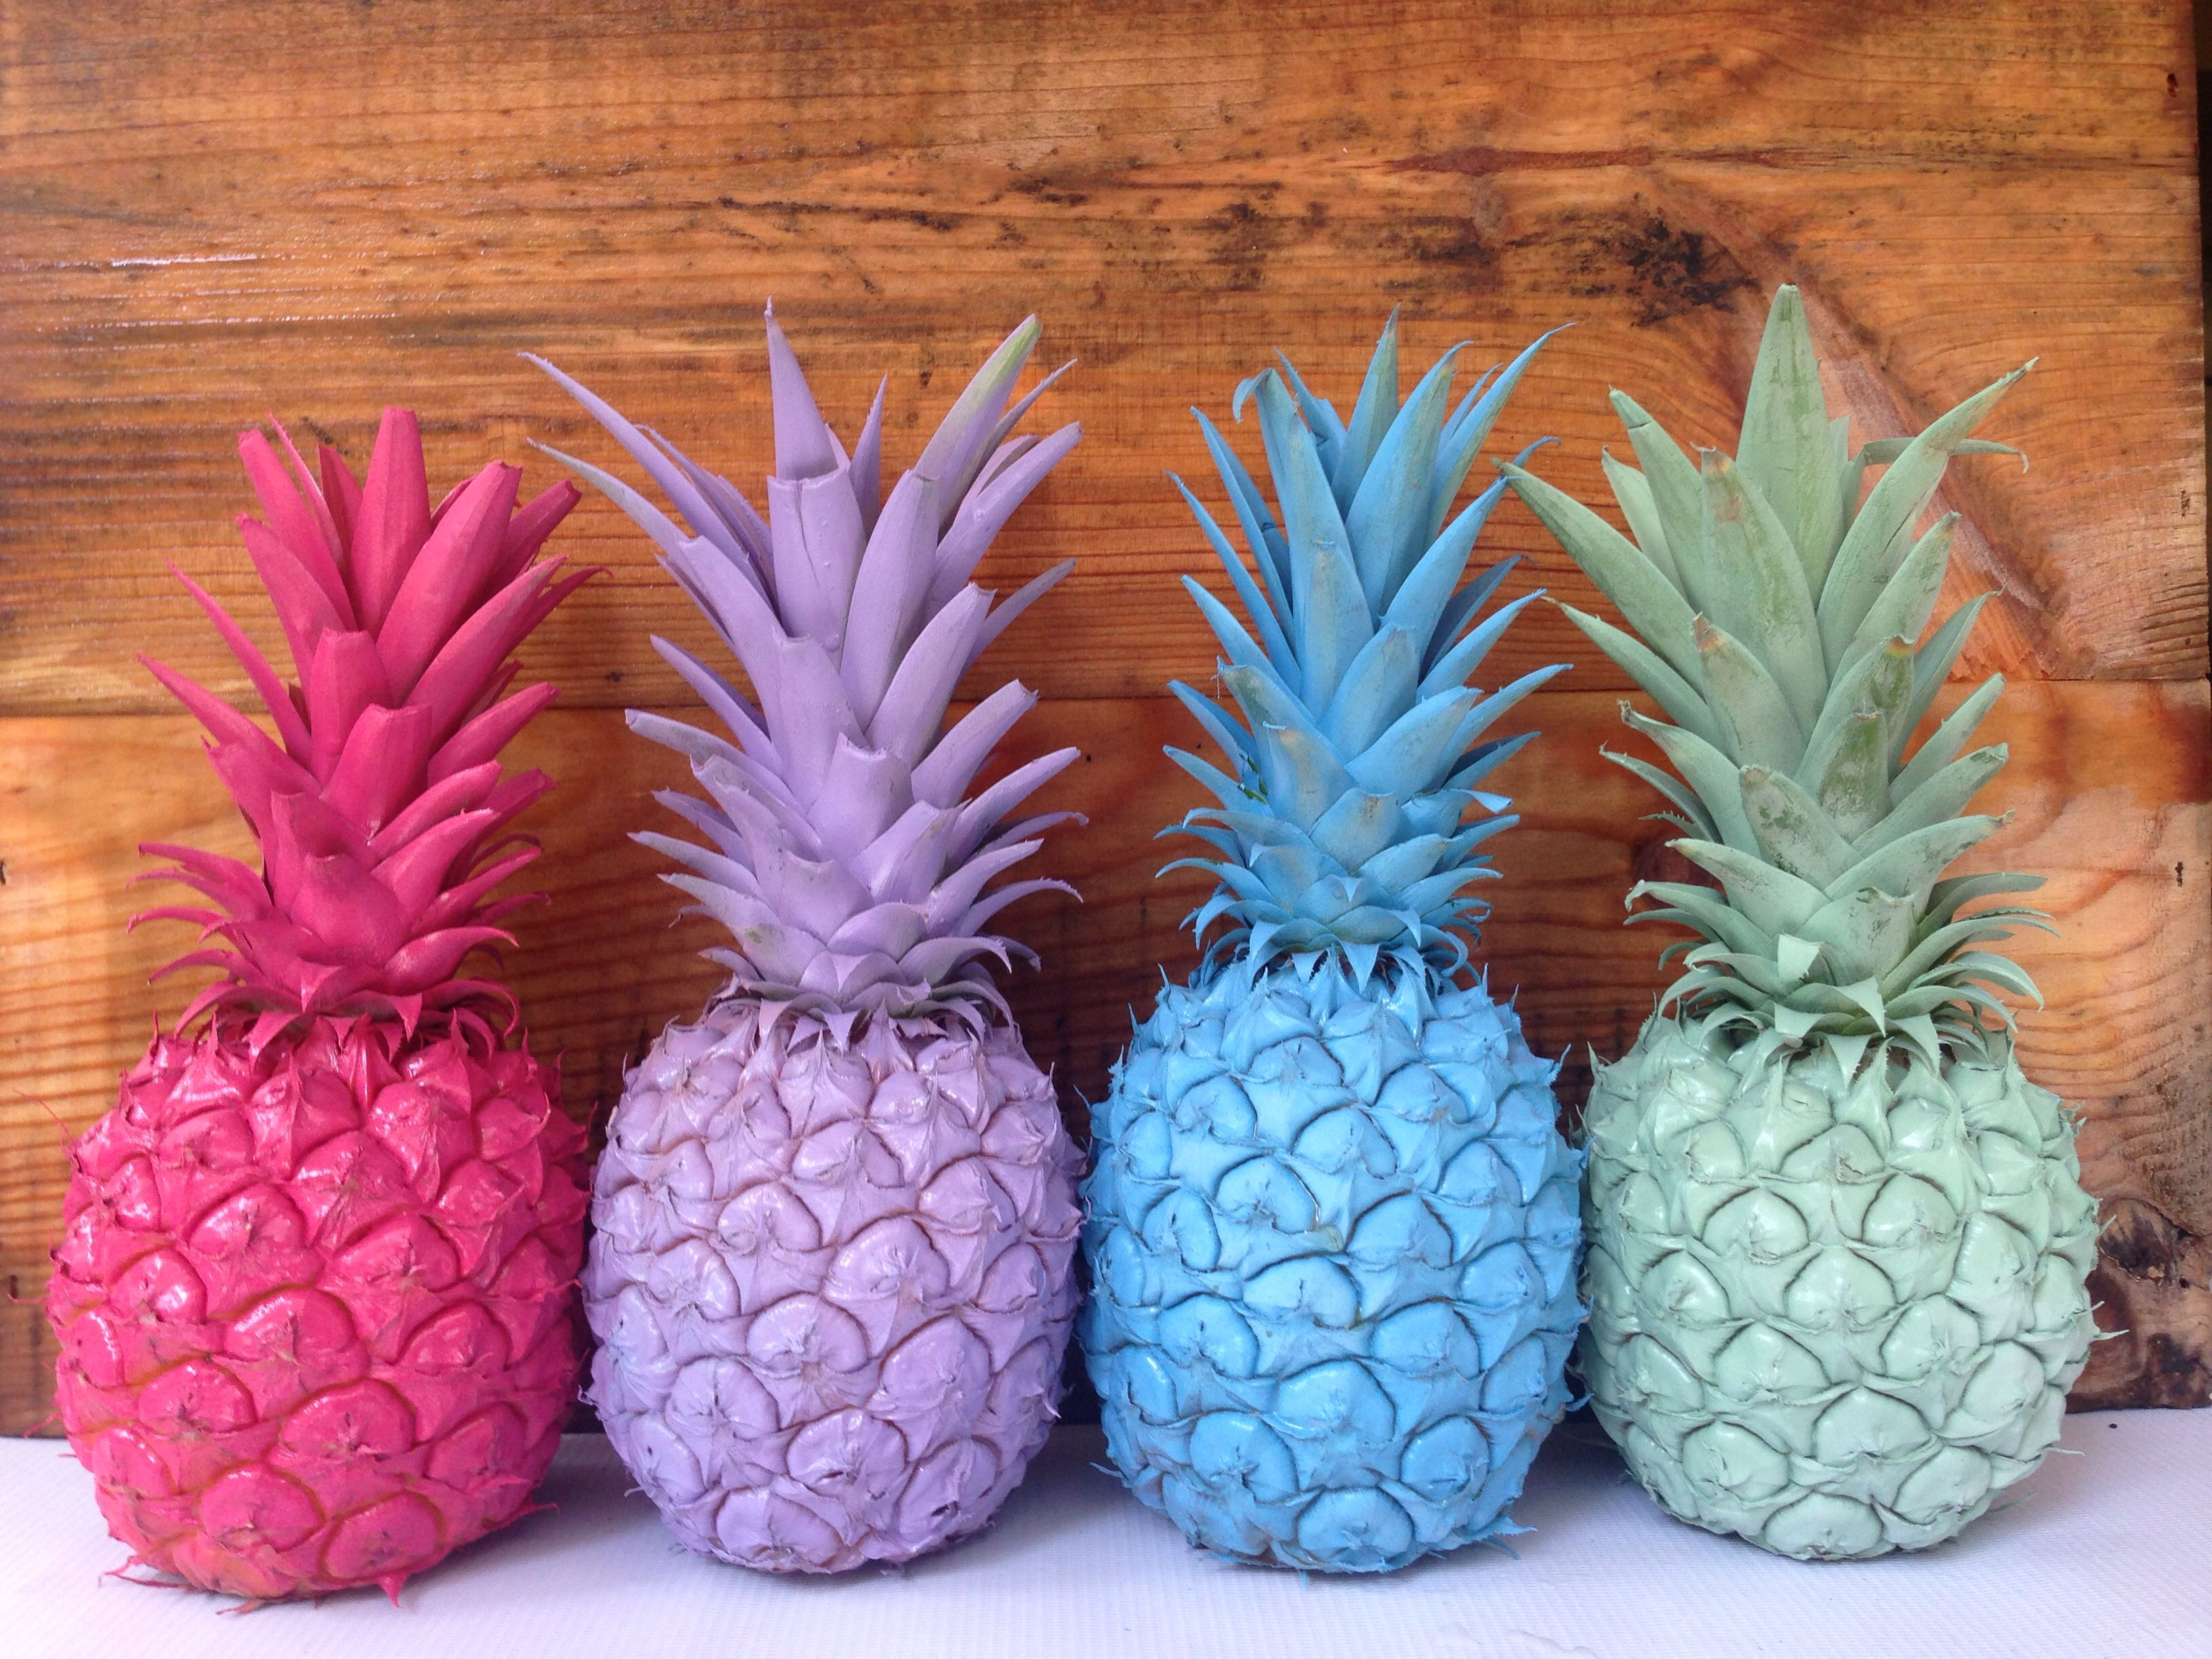 301 moved permanently for Ananas dekoration